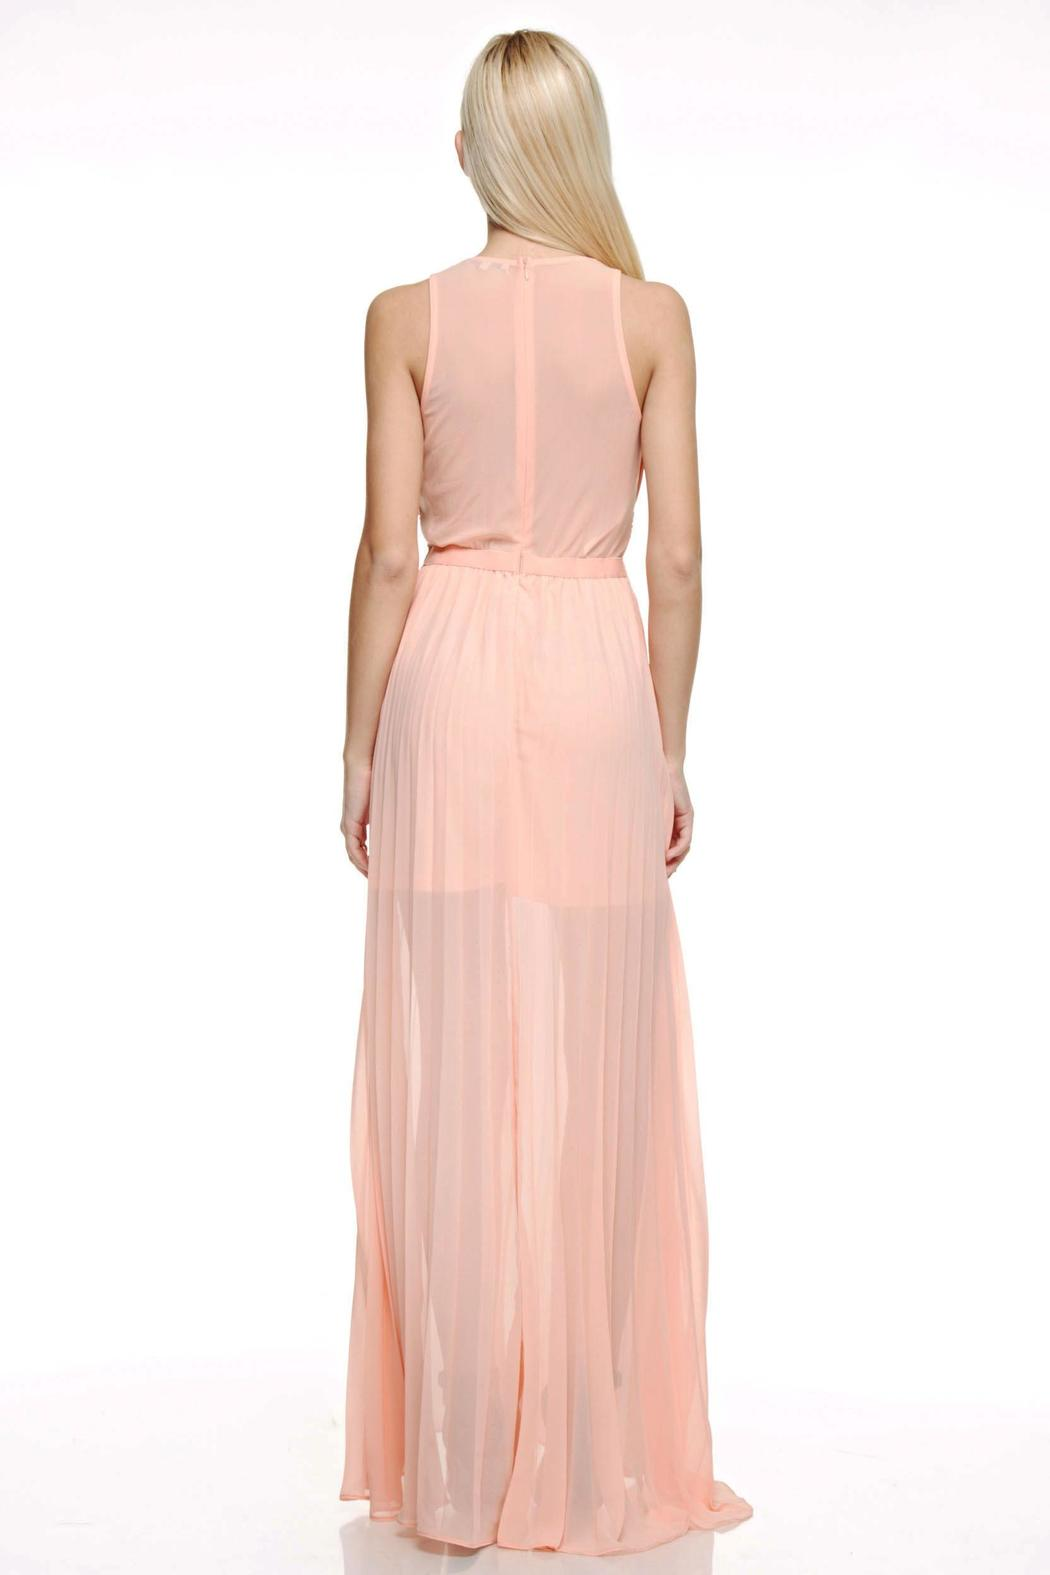 The Clothing Co Embellished Maxi Dress - Side Cropped Image